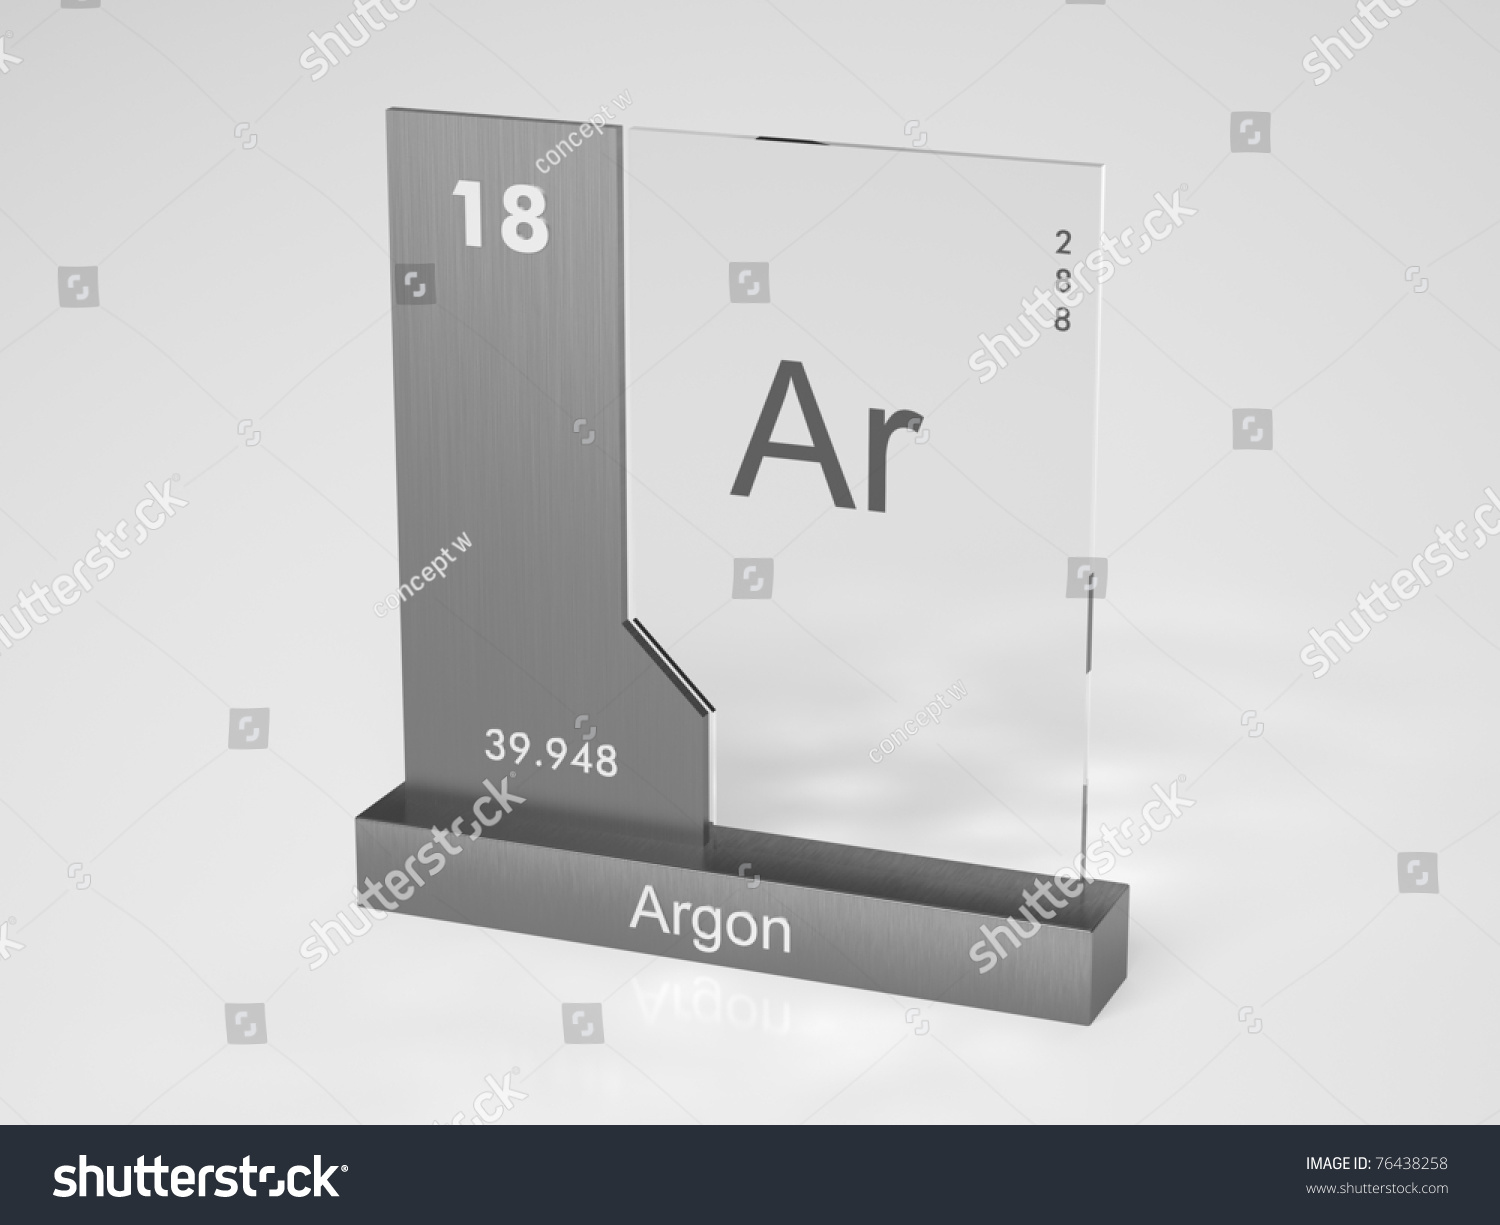 Argon symbol ar chemical element periodic stock illustration argon symbol ar chemical element of the periodic table gamestrikefo Choice Image